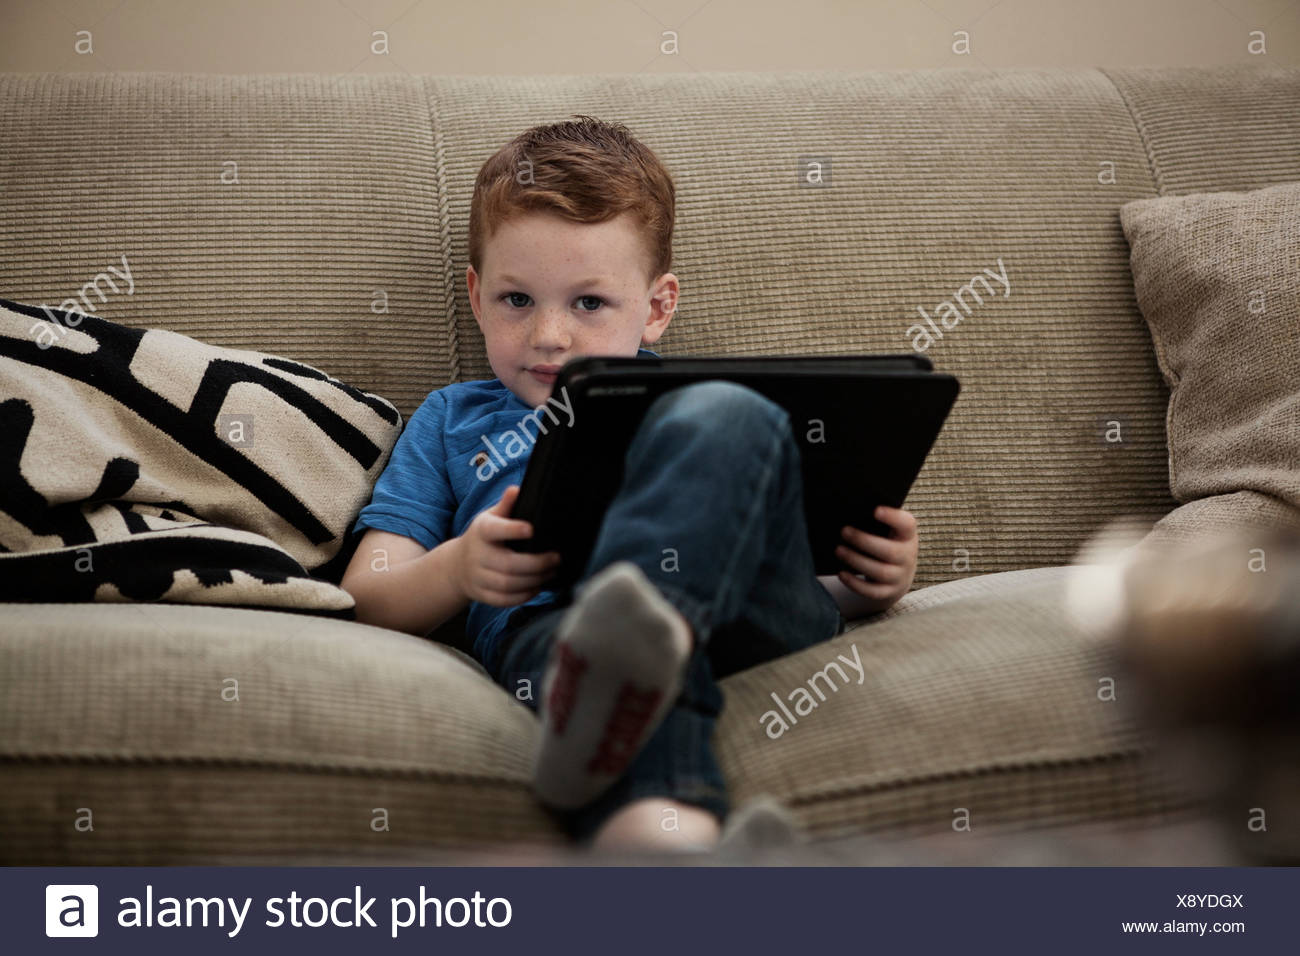 Boy with digital tablet - Stock Image